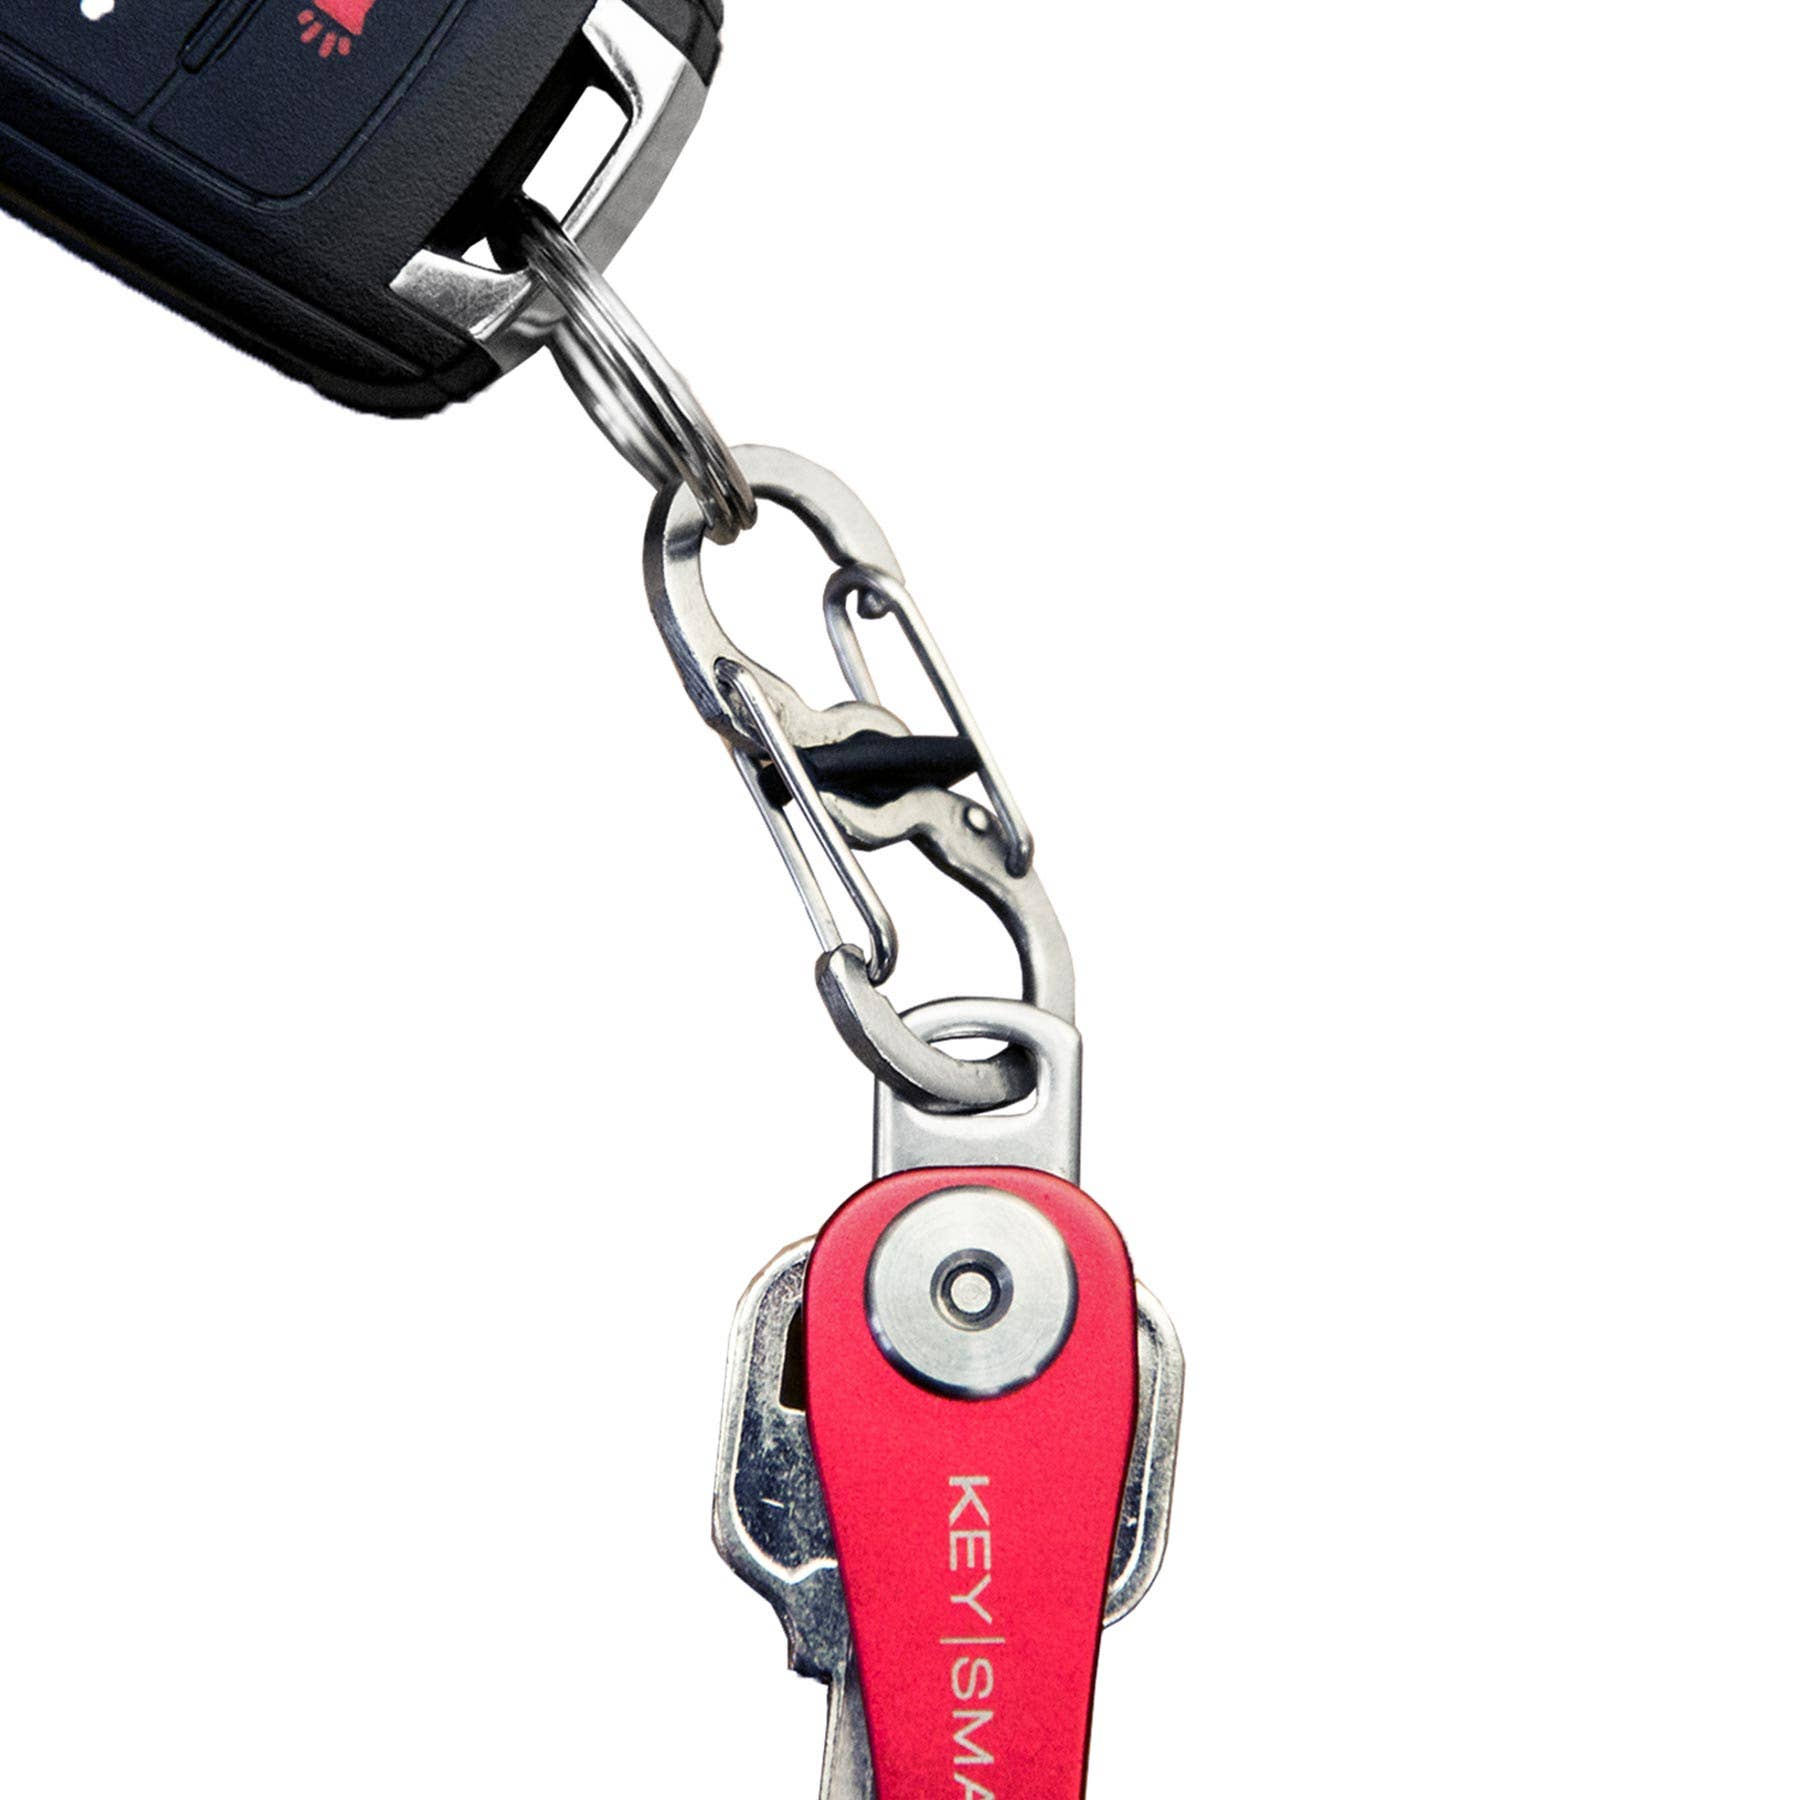 KeySmart - Quick-Disconnect | Nite-Ize S-Biner with Micro-Lock